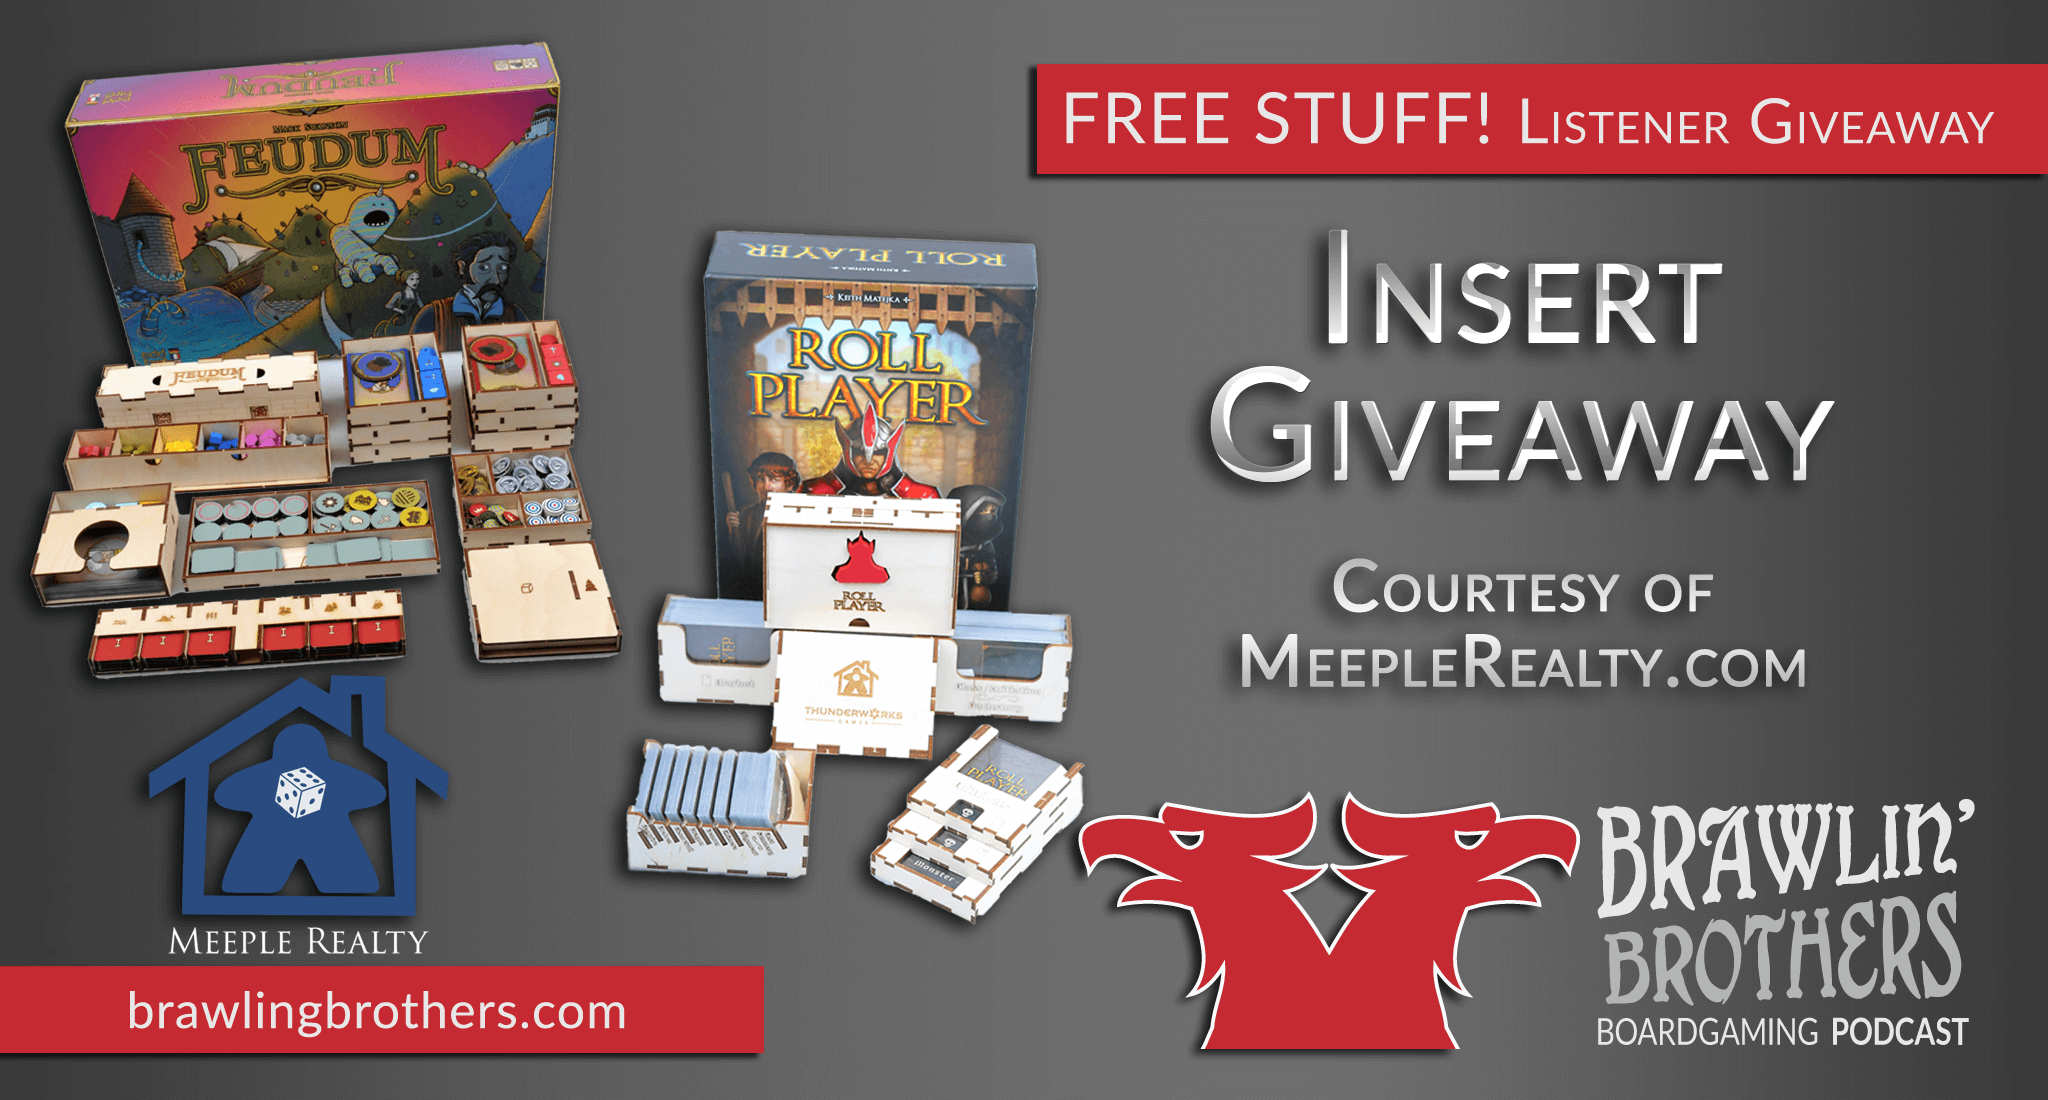 meeple realty coupon code